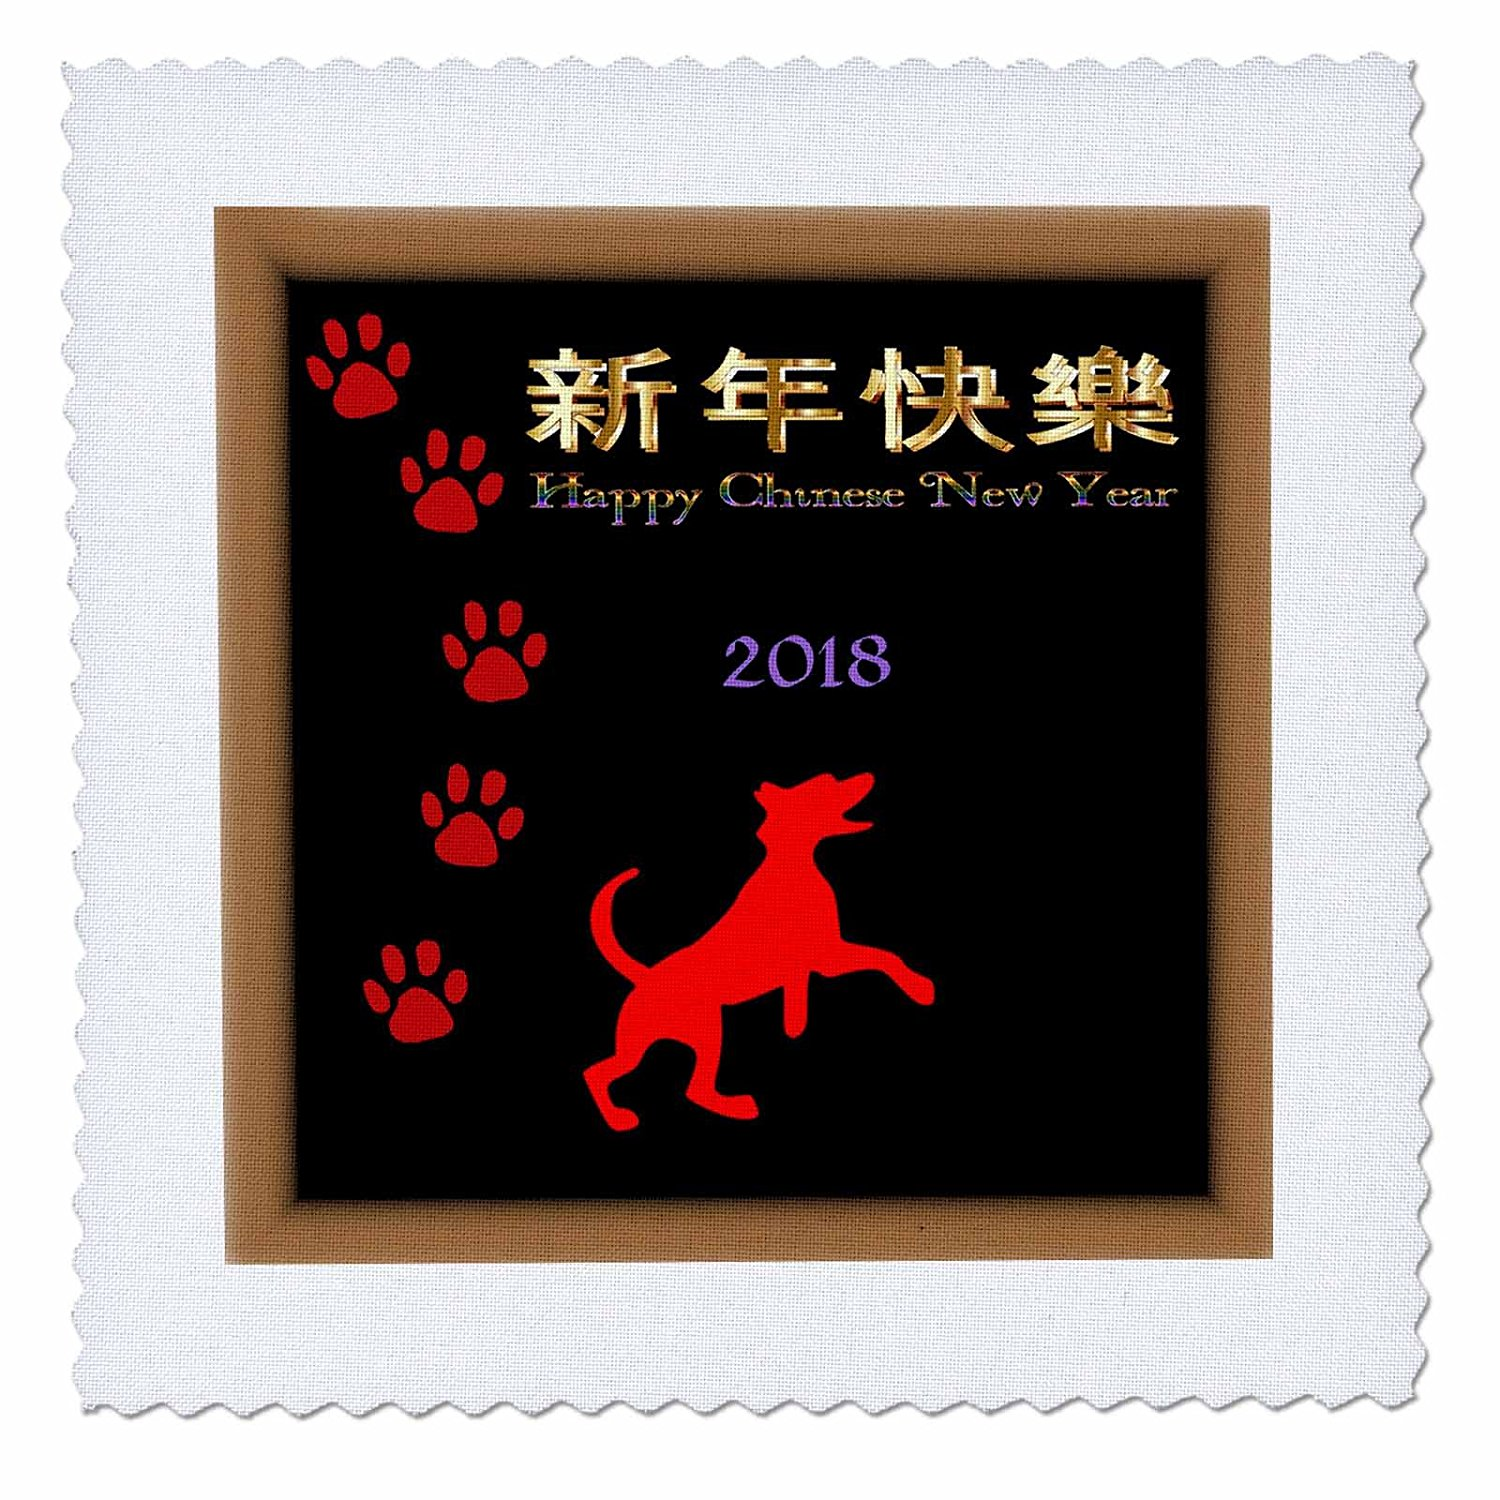 3dRose Chinese New Year - Image of Chinese New Year With Red Dog and Paw Prints On Black - 20x20 inch quilt square (qs_262609_8)